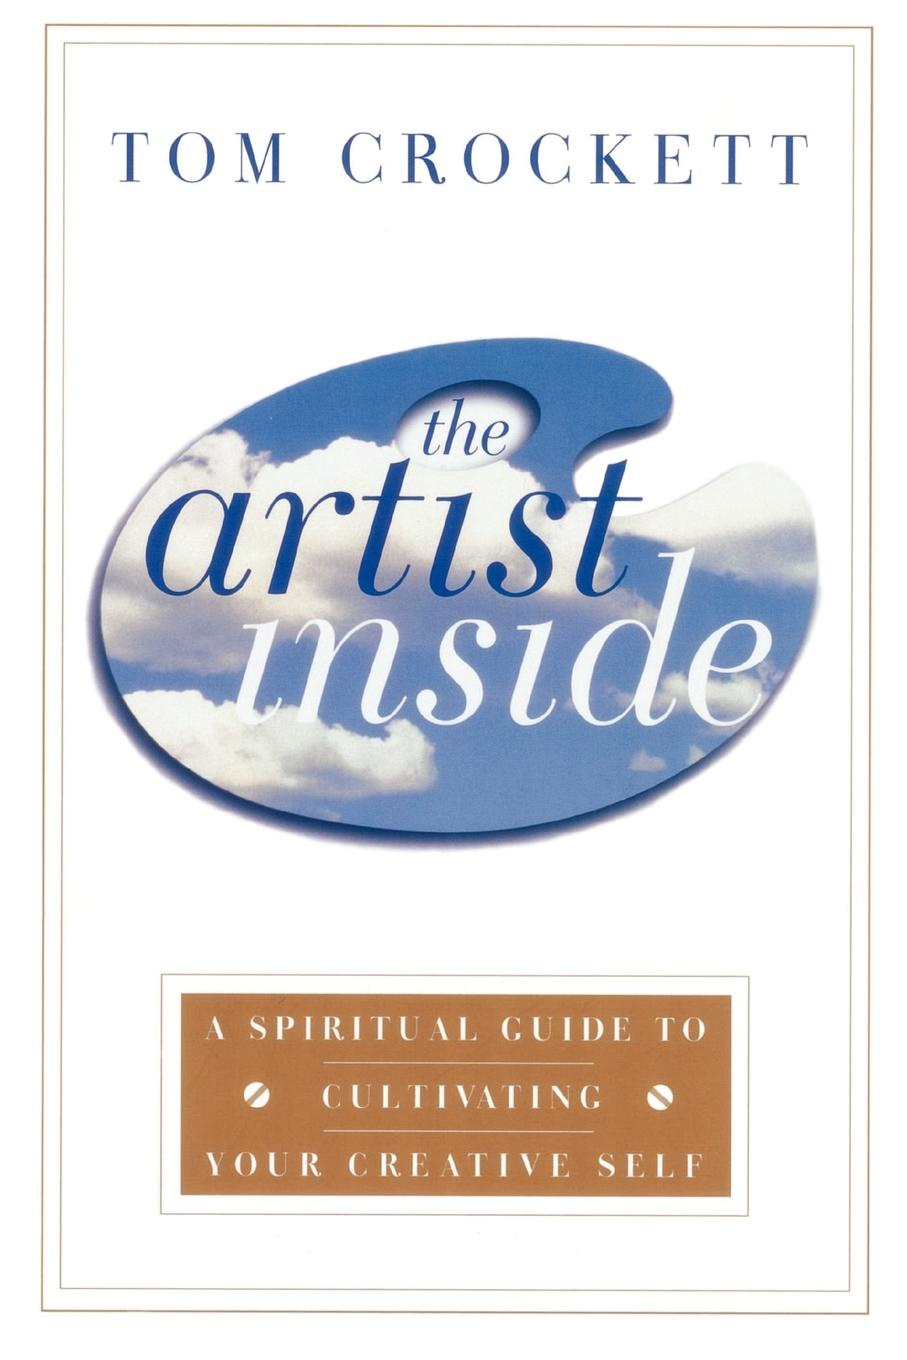 Tom Crockett The Artist Inside. A Spiritual Guide to Cultivating Your Creative Self